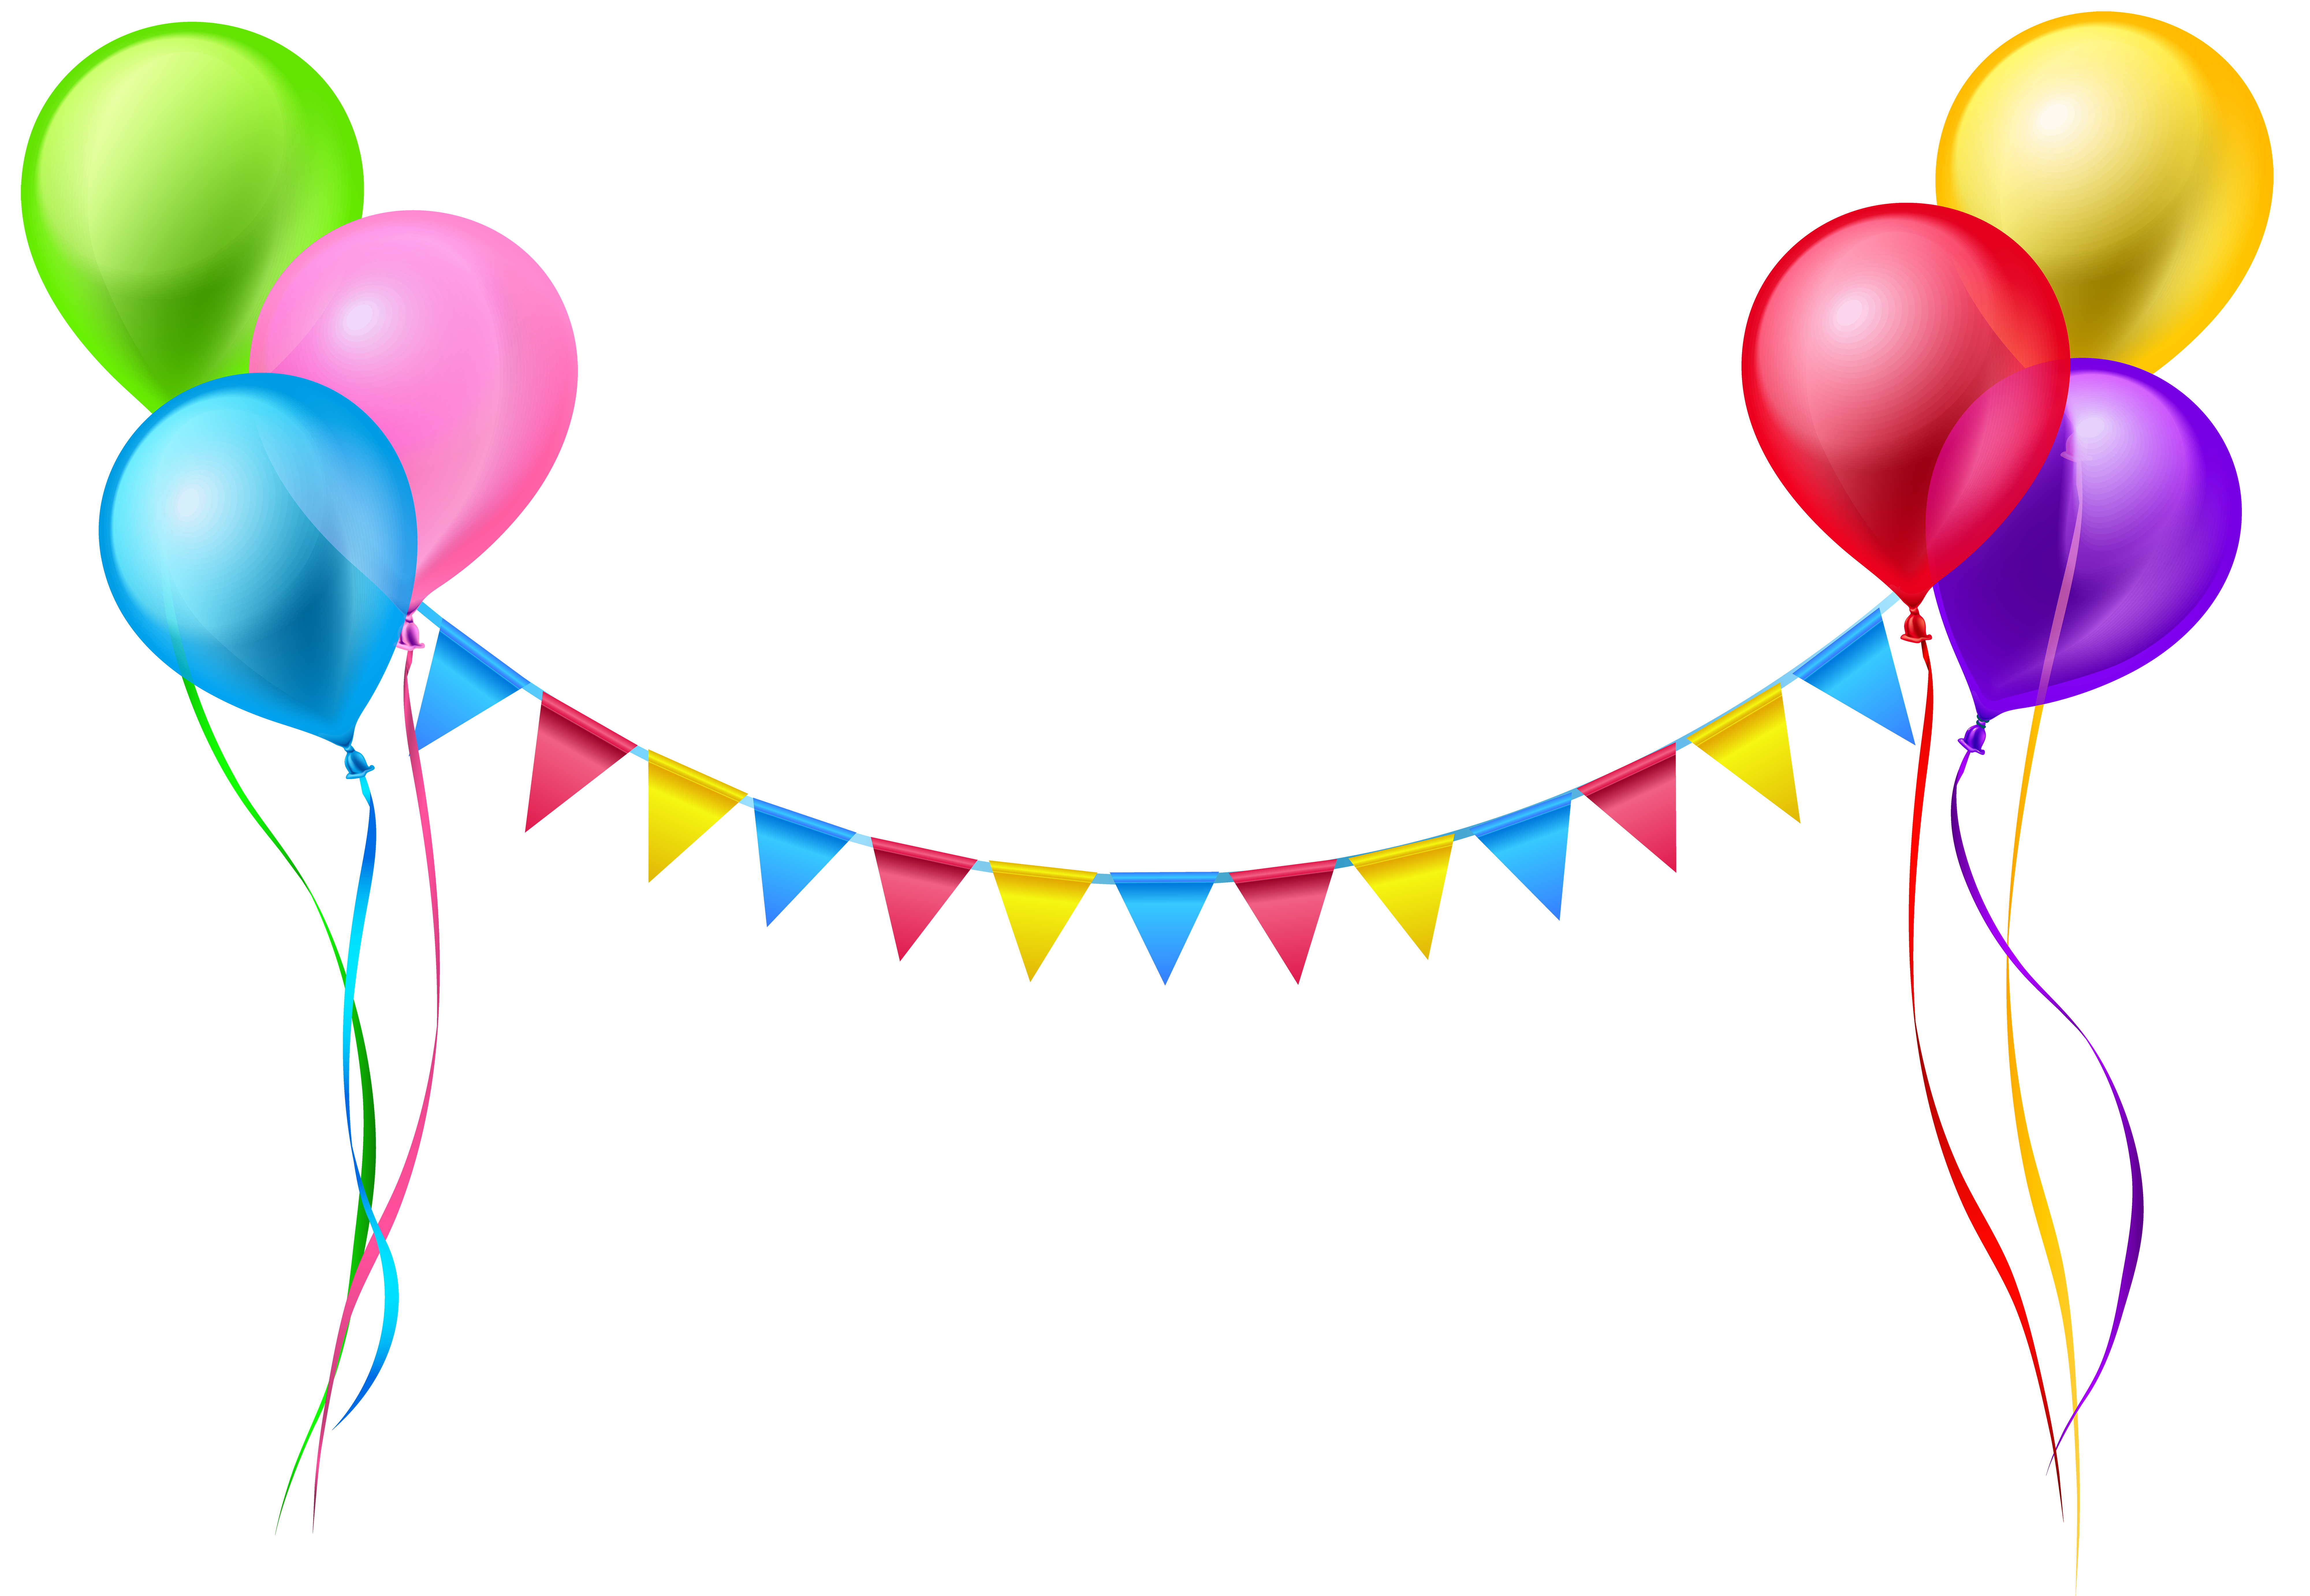 graphic free Streamer and balloons png. Streamers clipart